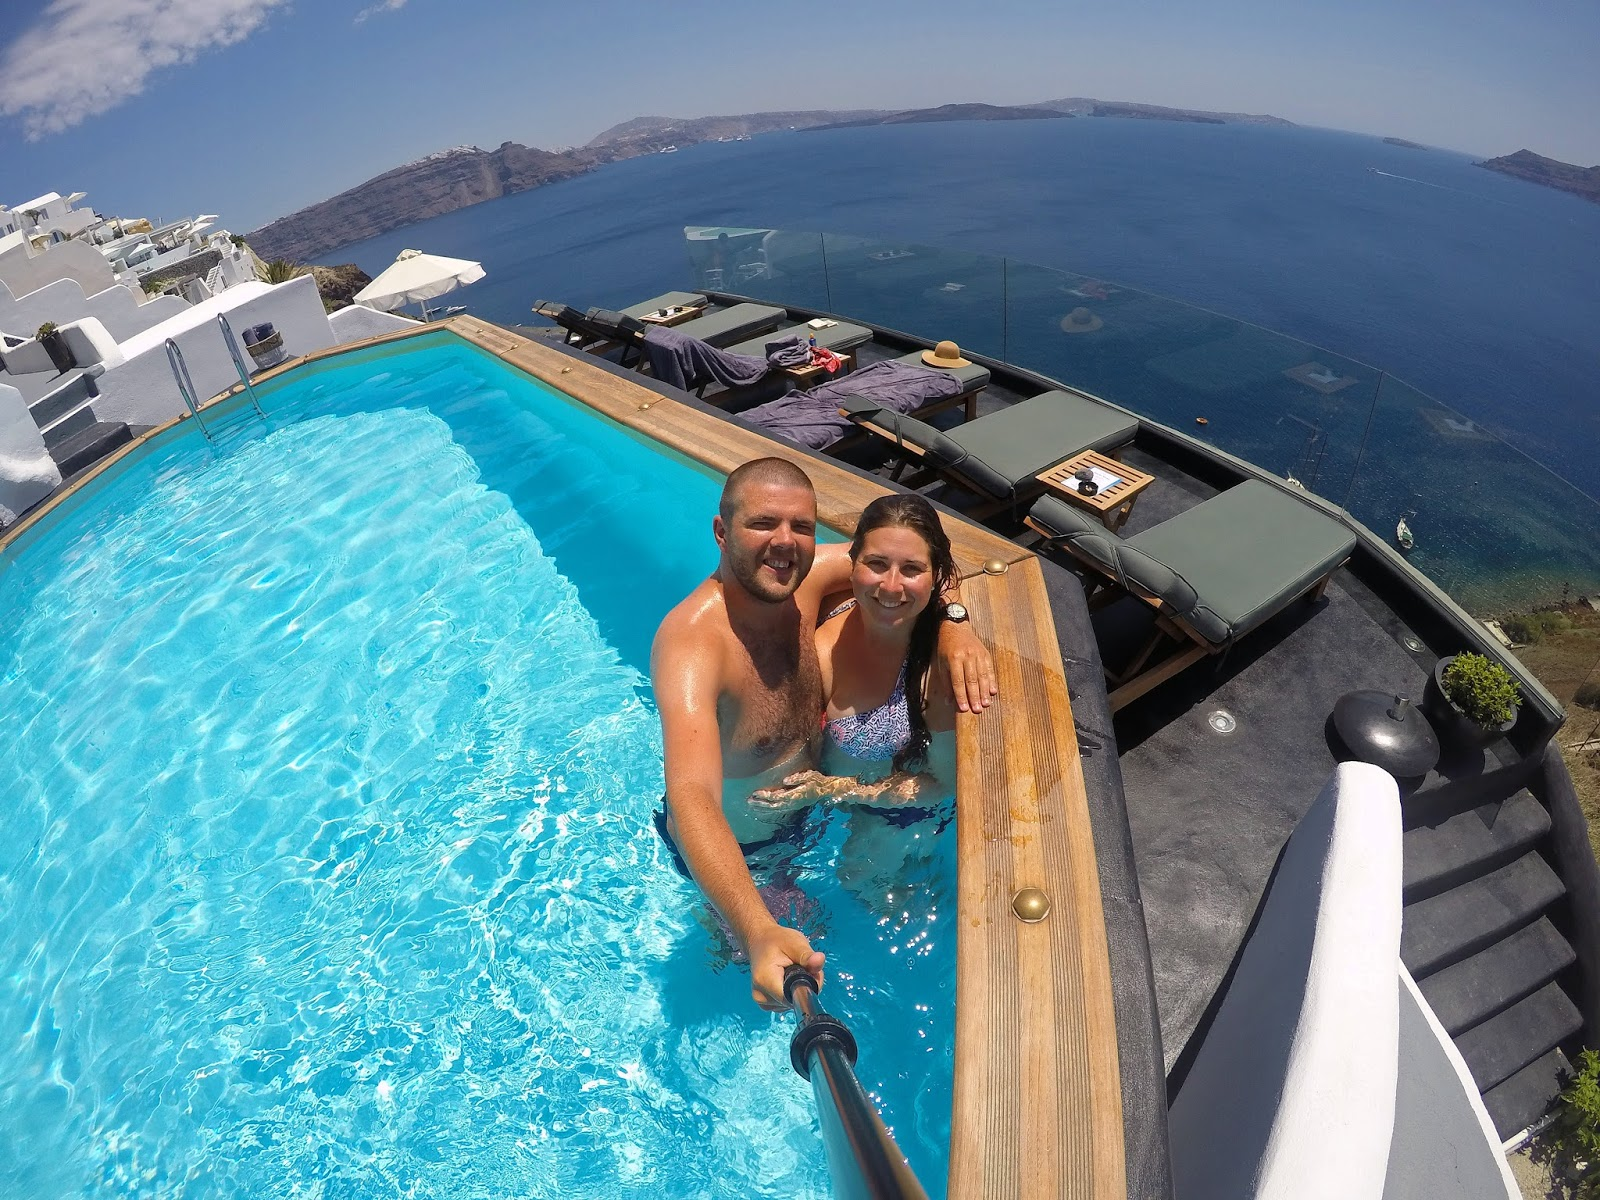 Couple in pool at Nostos Apartments Oia Santorini